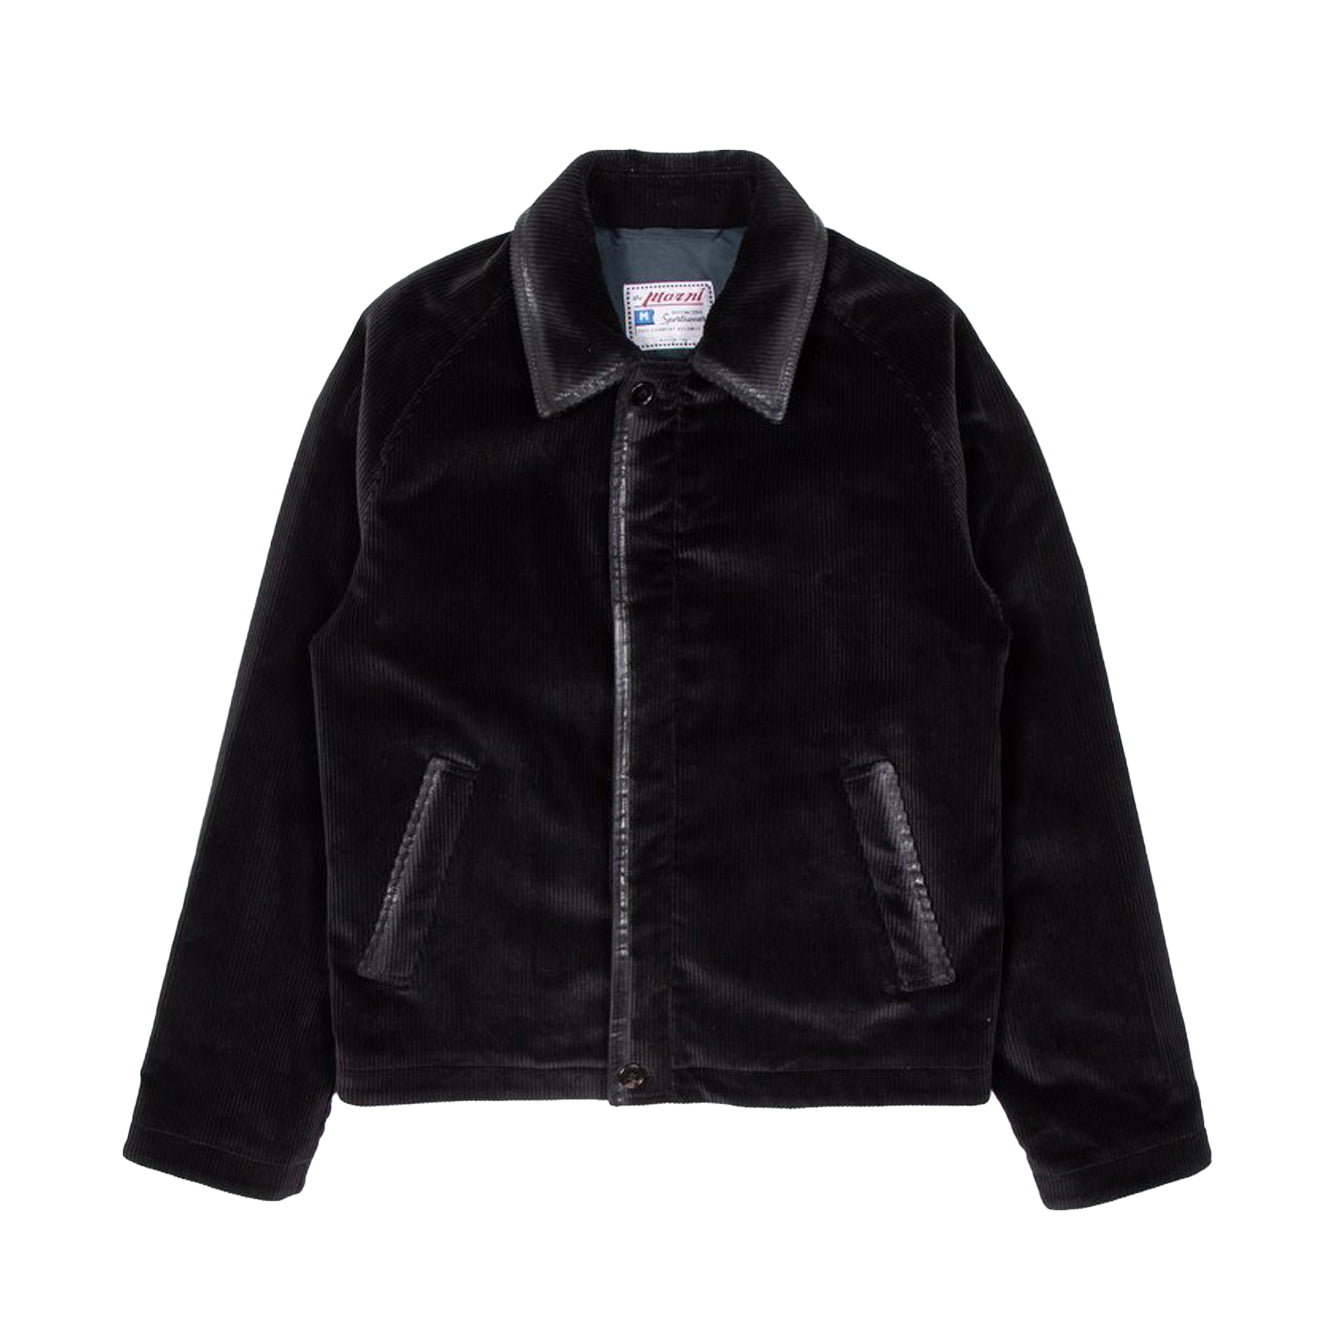 Marni Zip Cord Jacket